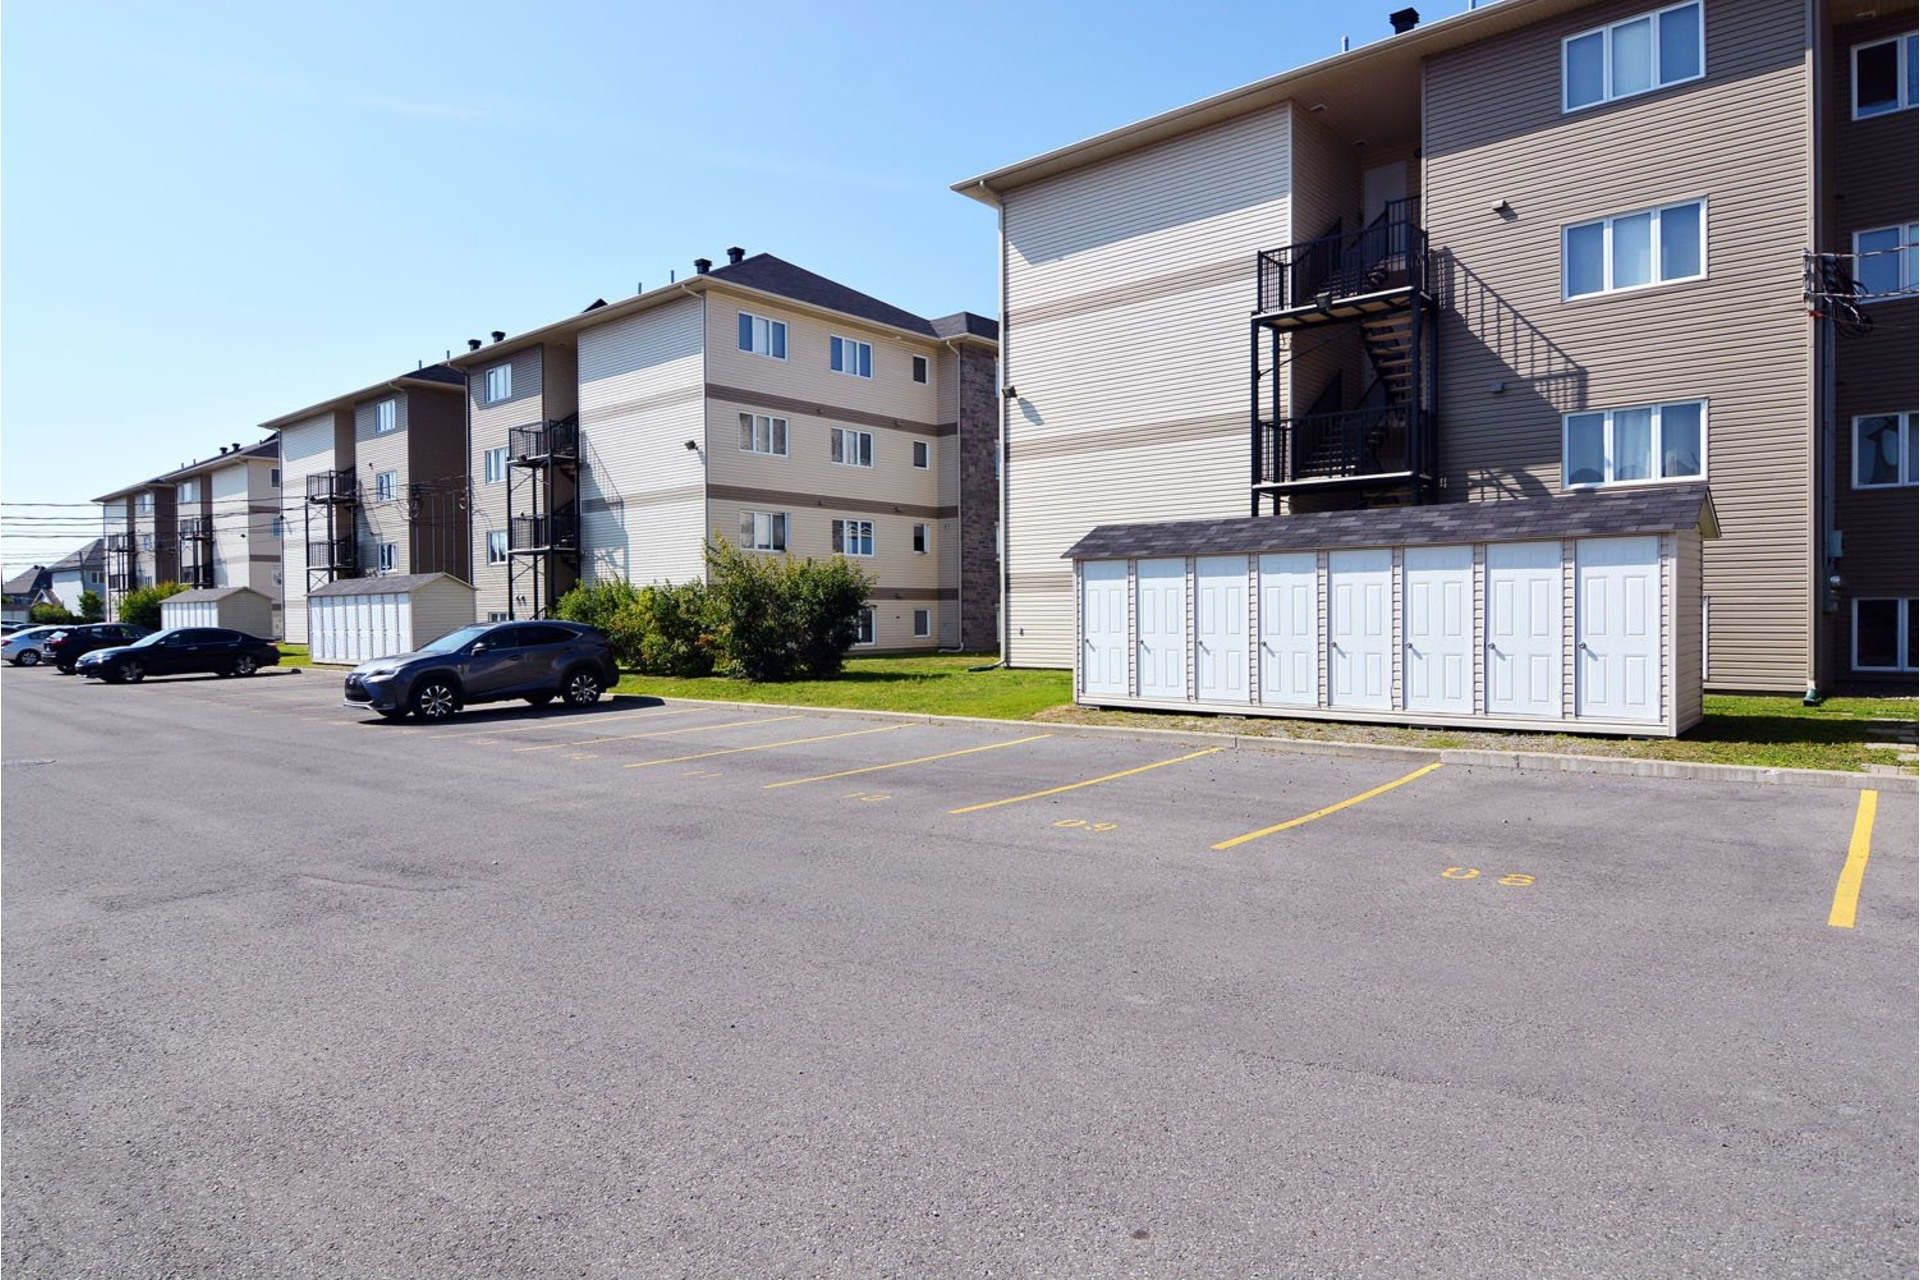 image 20 - Apartment For sale Vaudreuil-Dorion - 7 rooms